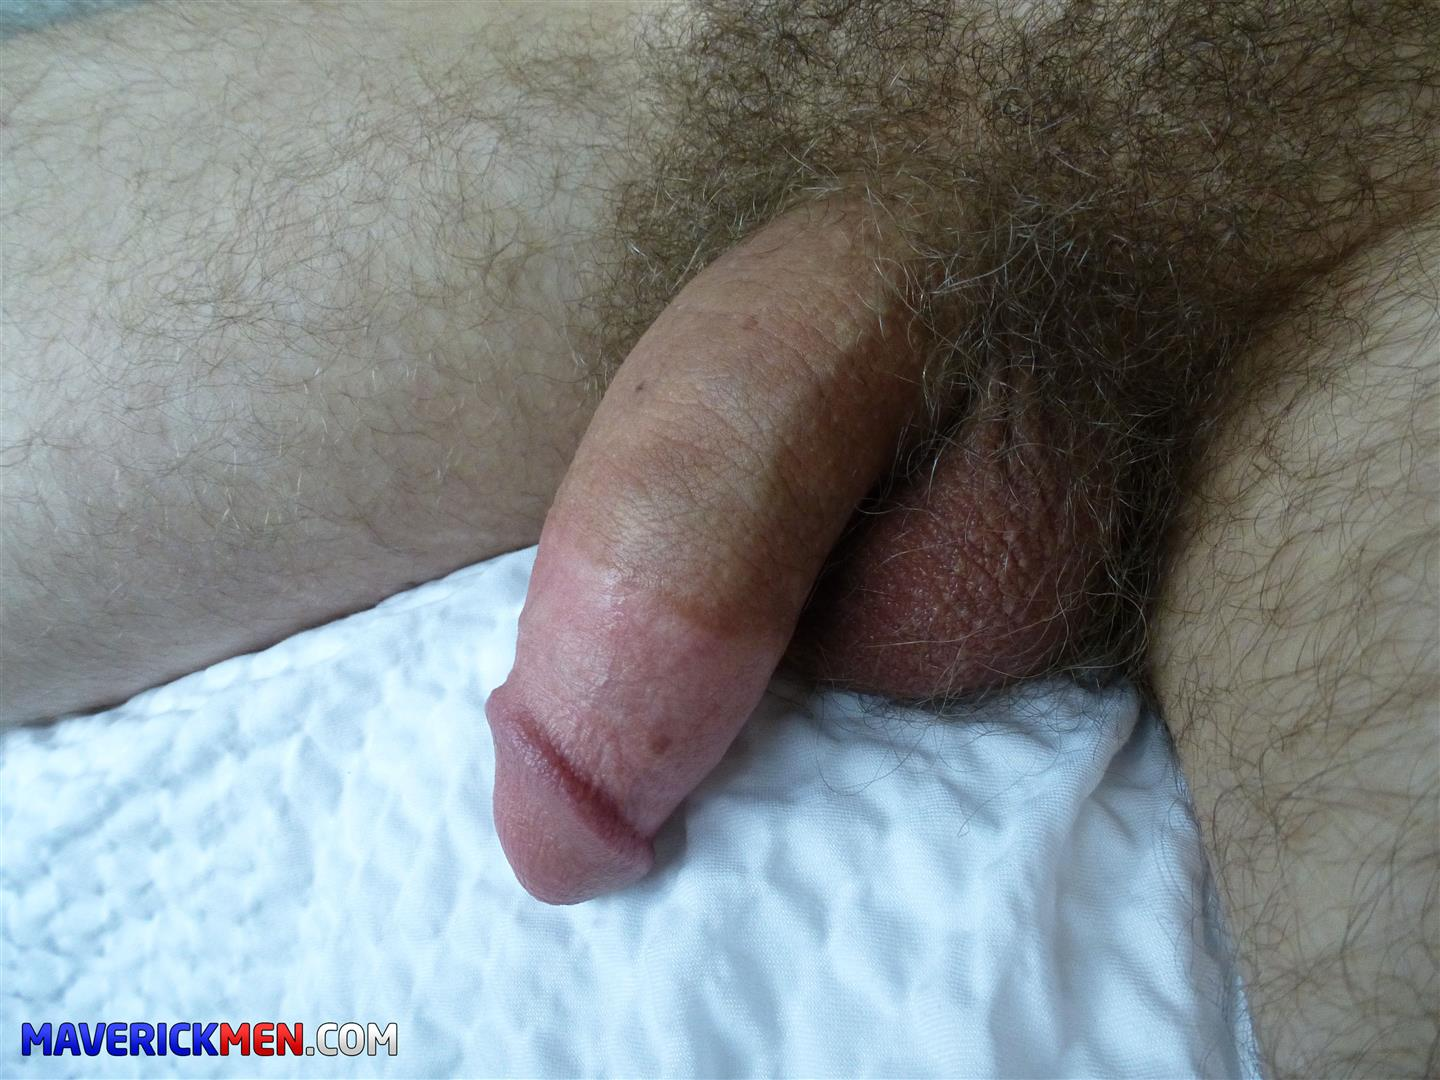 Maverick Men Little Bobby Hairy Ass Virgin Gets Barebacked Amateur Gay Porn 05 Hairy Ass Young Virgin Gets Barebacked By Two Muscle Daddies